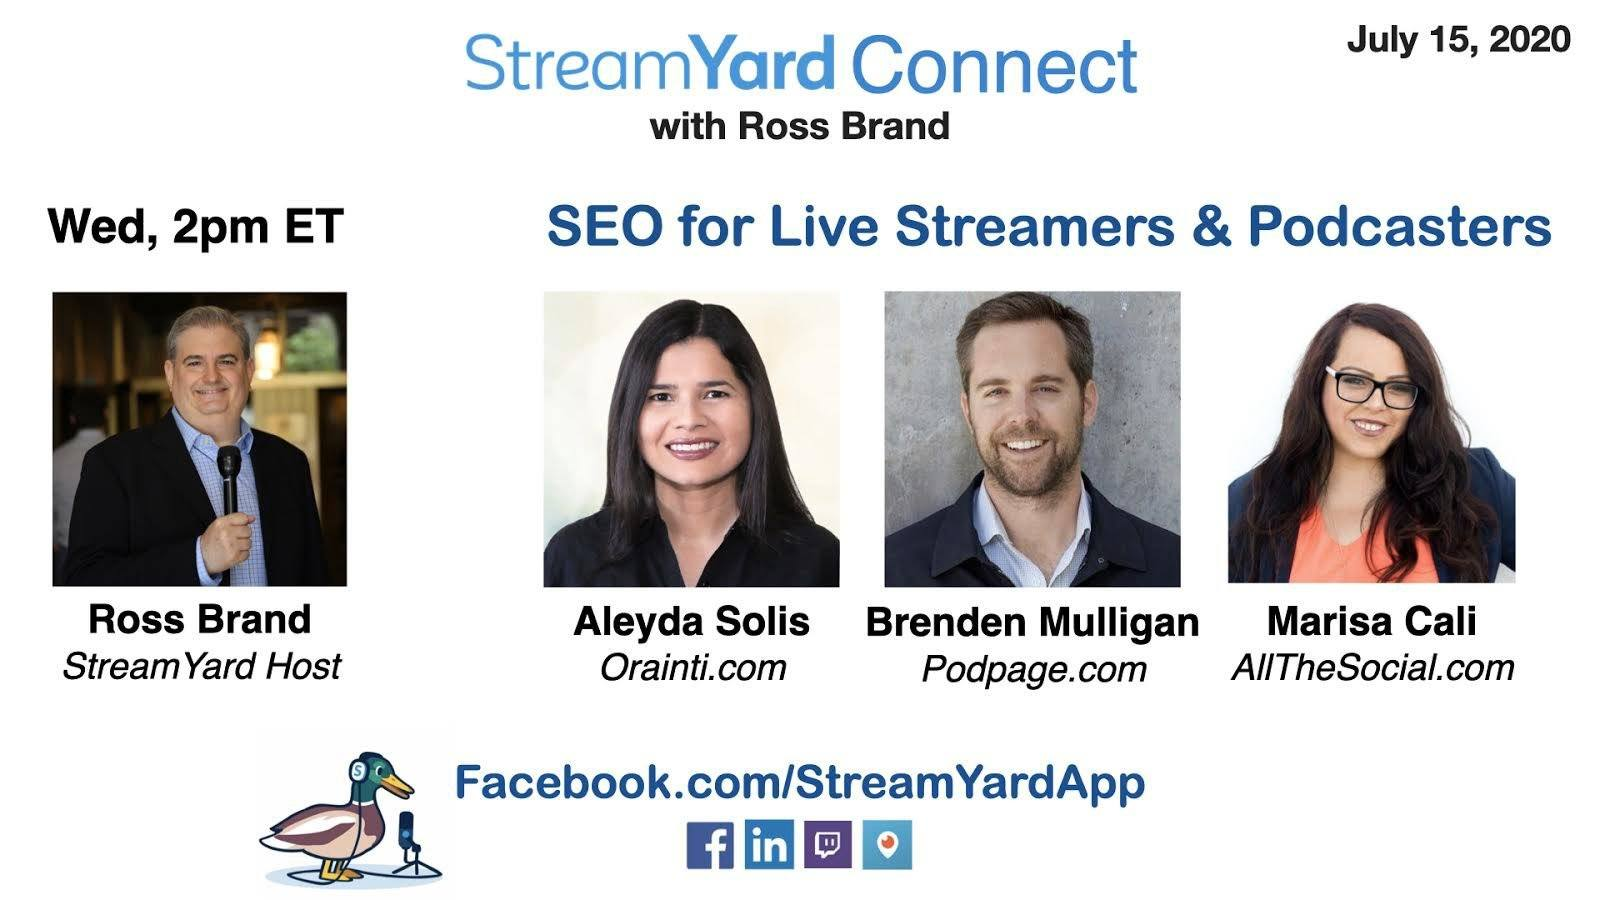 streamyard connect with ross brand ep33 SEO Panel